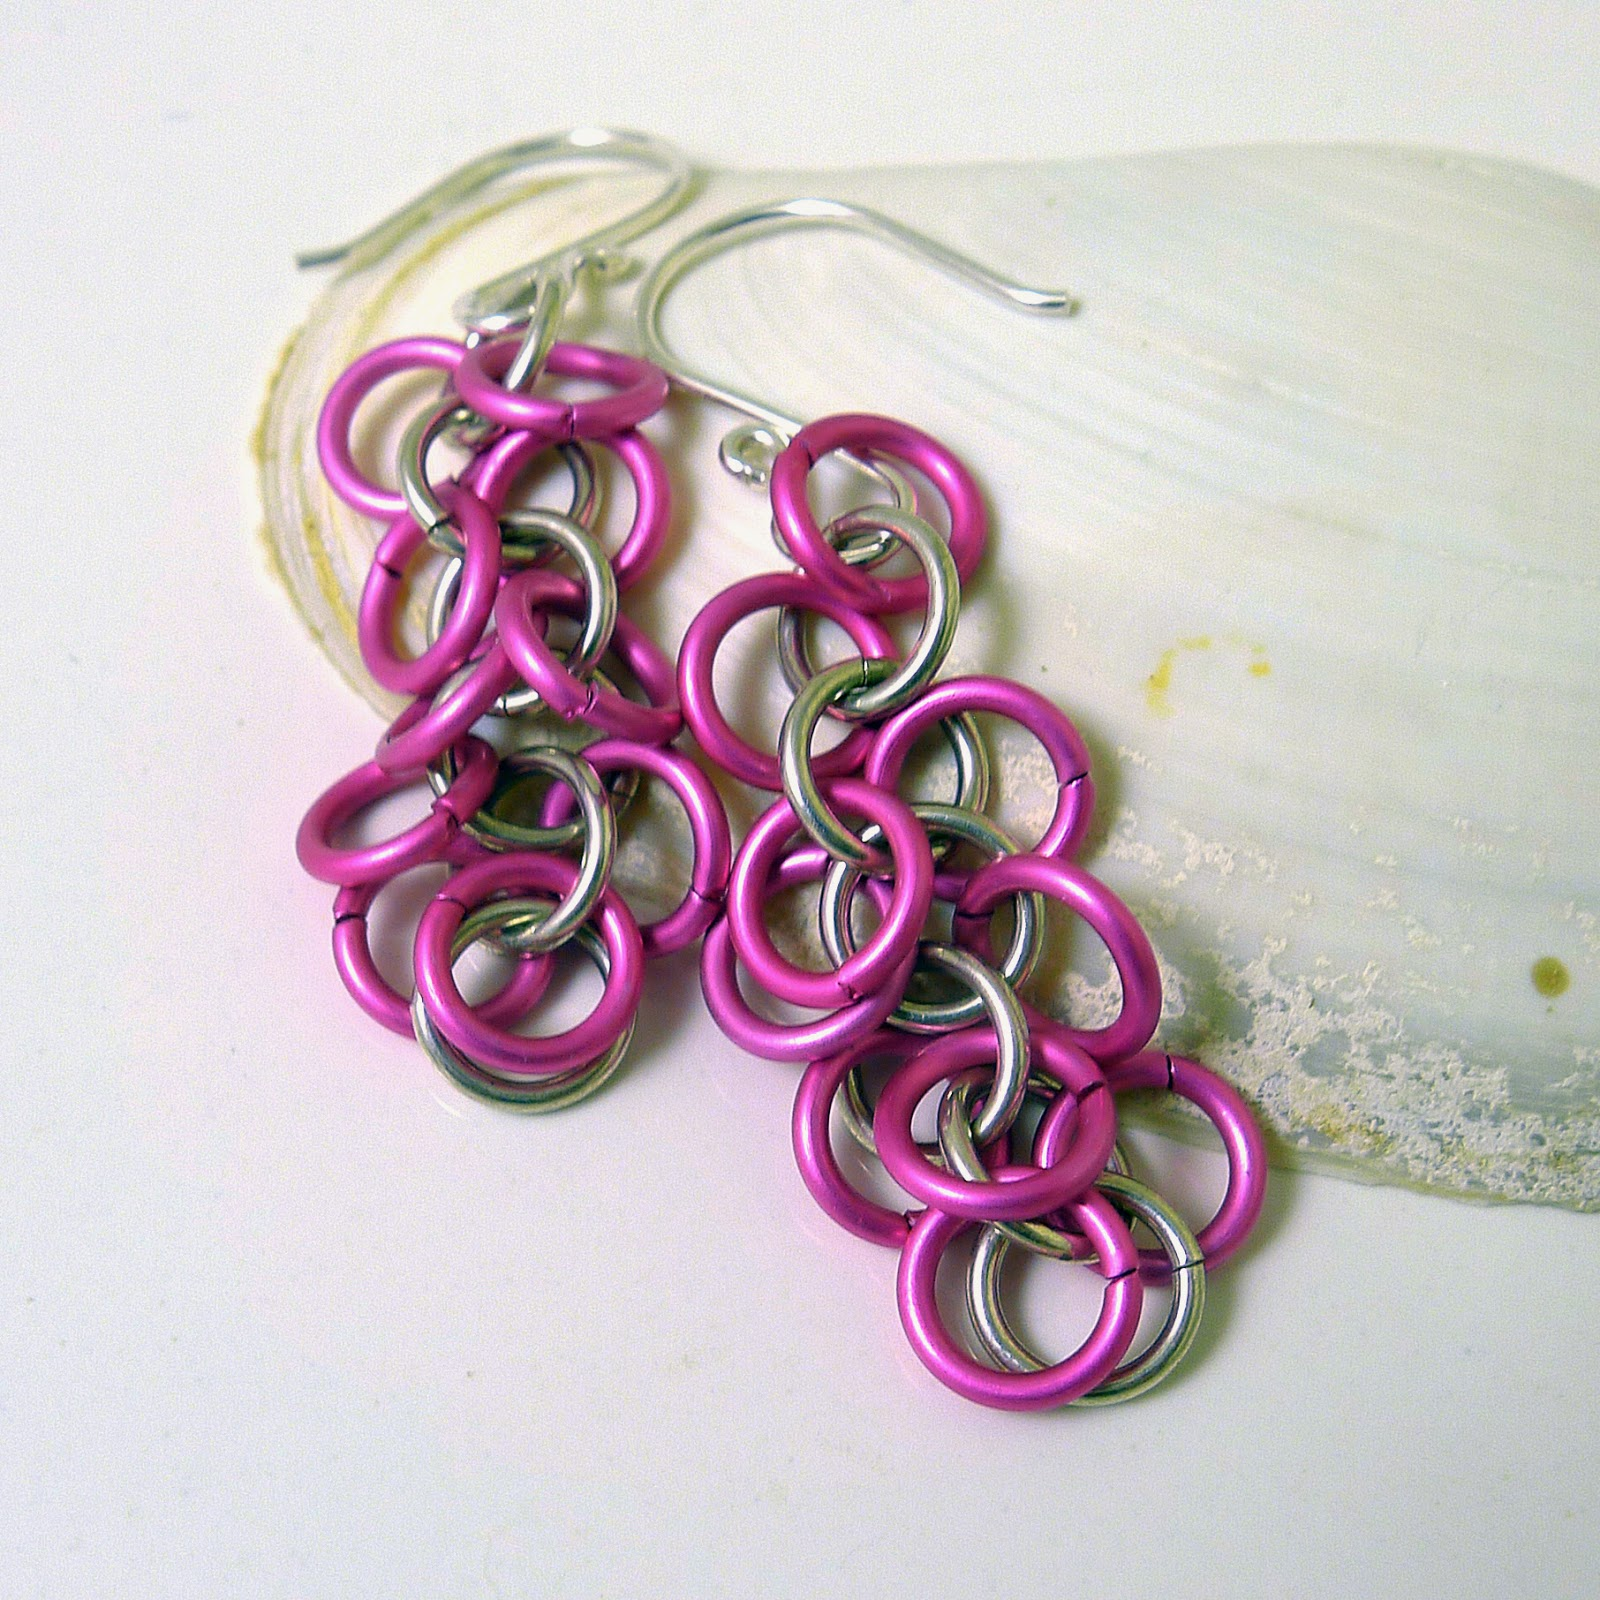 https://www.etsy.com/nz/listing/184199858/sterling-silver-and-pink-aluminium